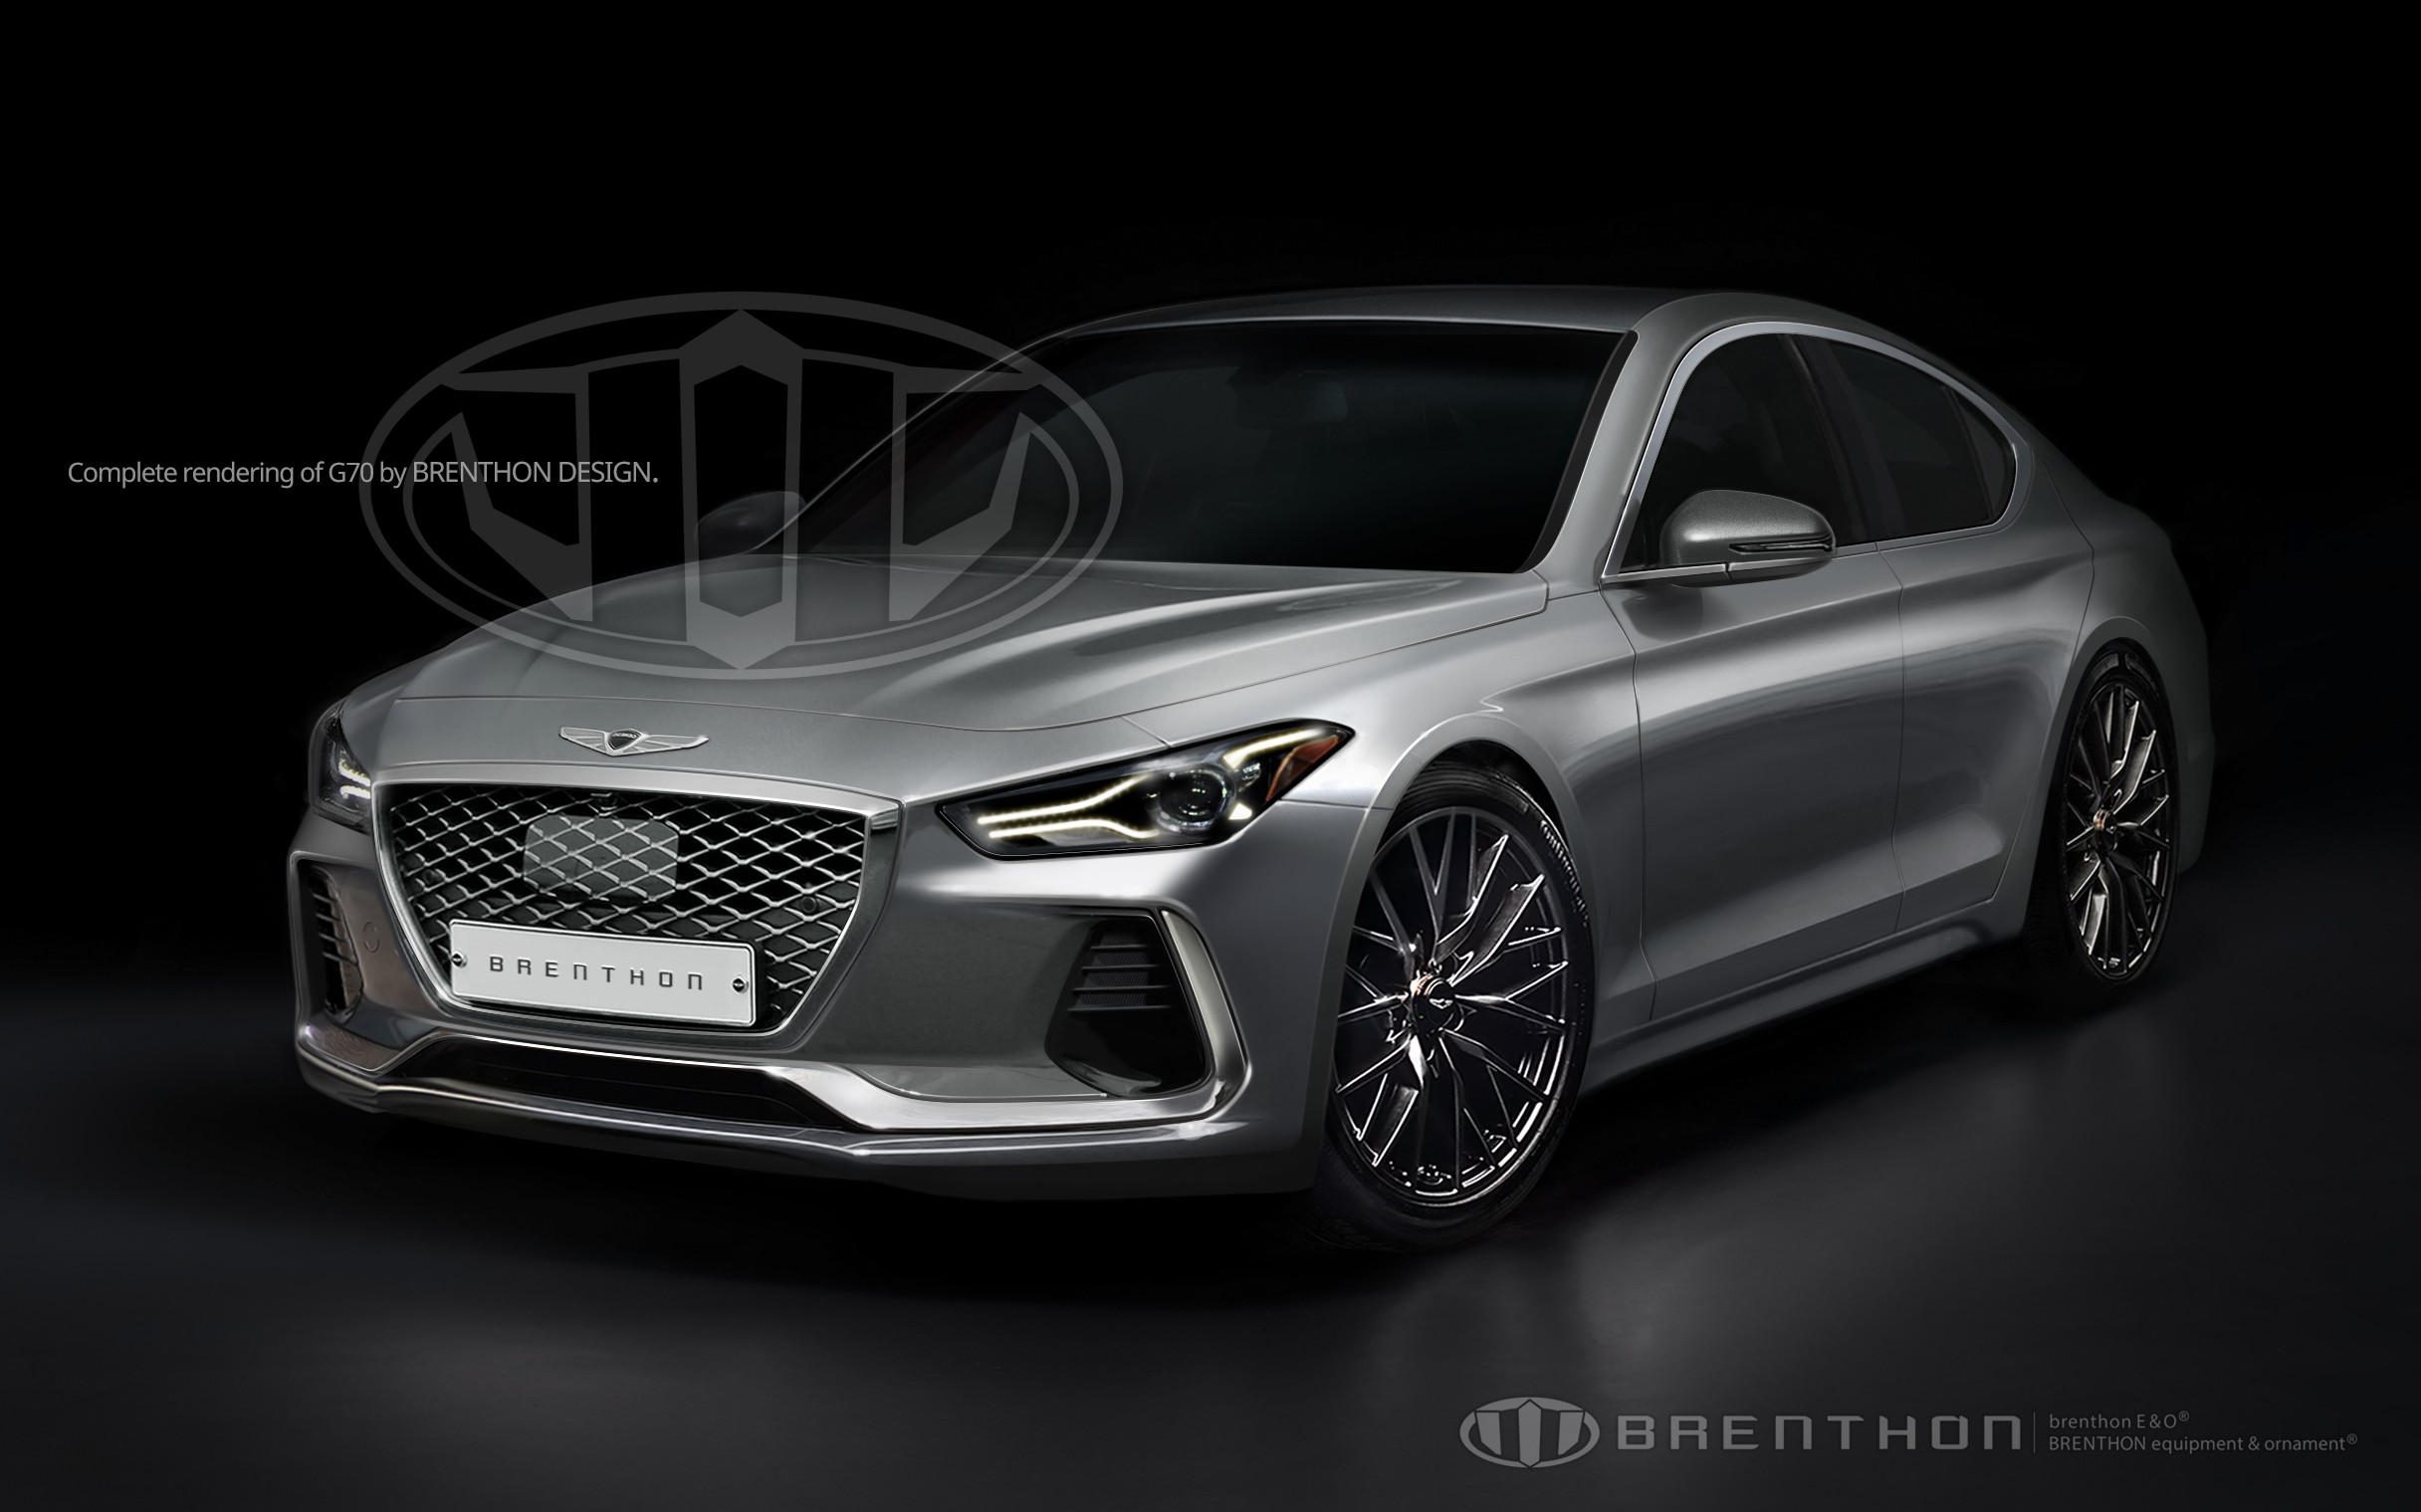 2018 Genesis G70 Imagined By Brenthon Design Autoevolution